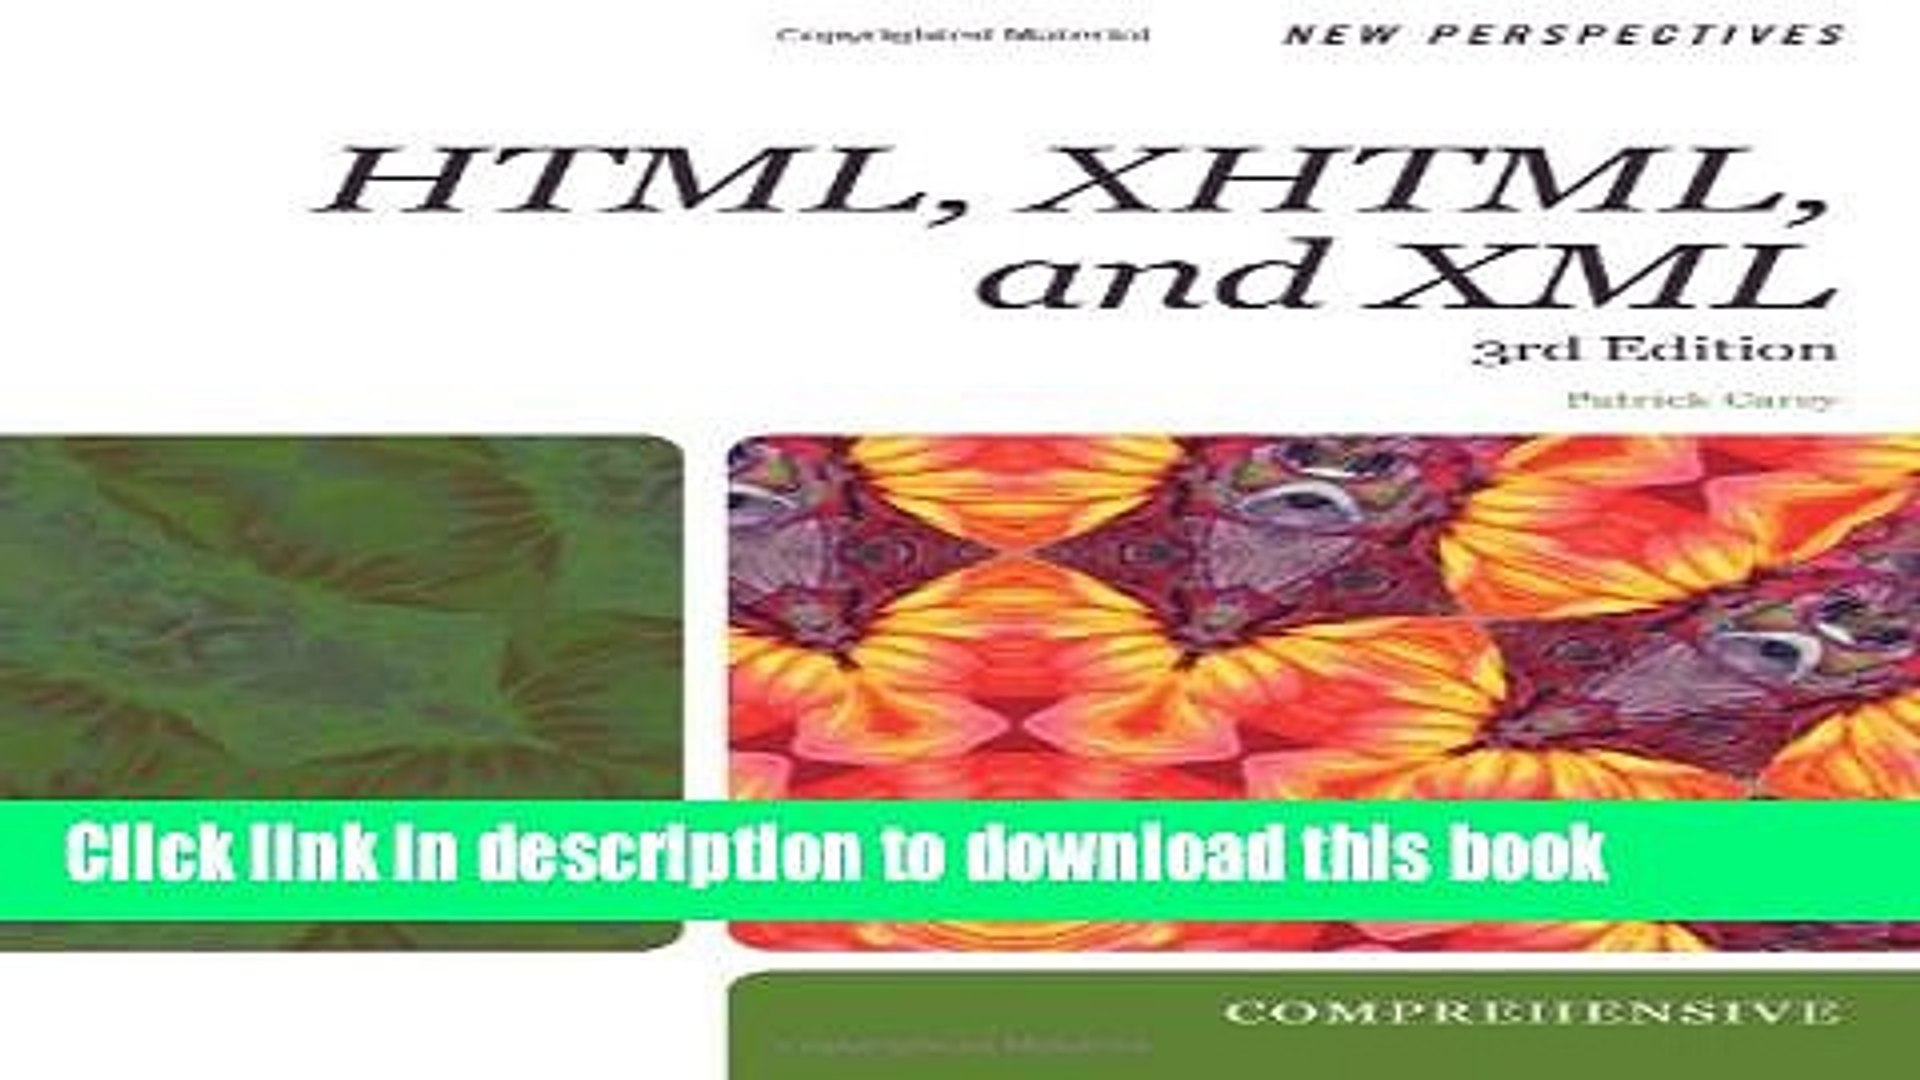 New Perspectives on HTML, XHTML, and XML, Third Edition